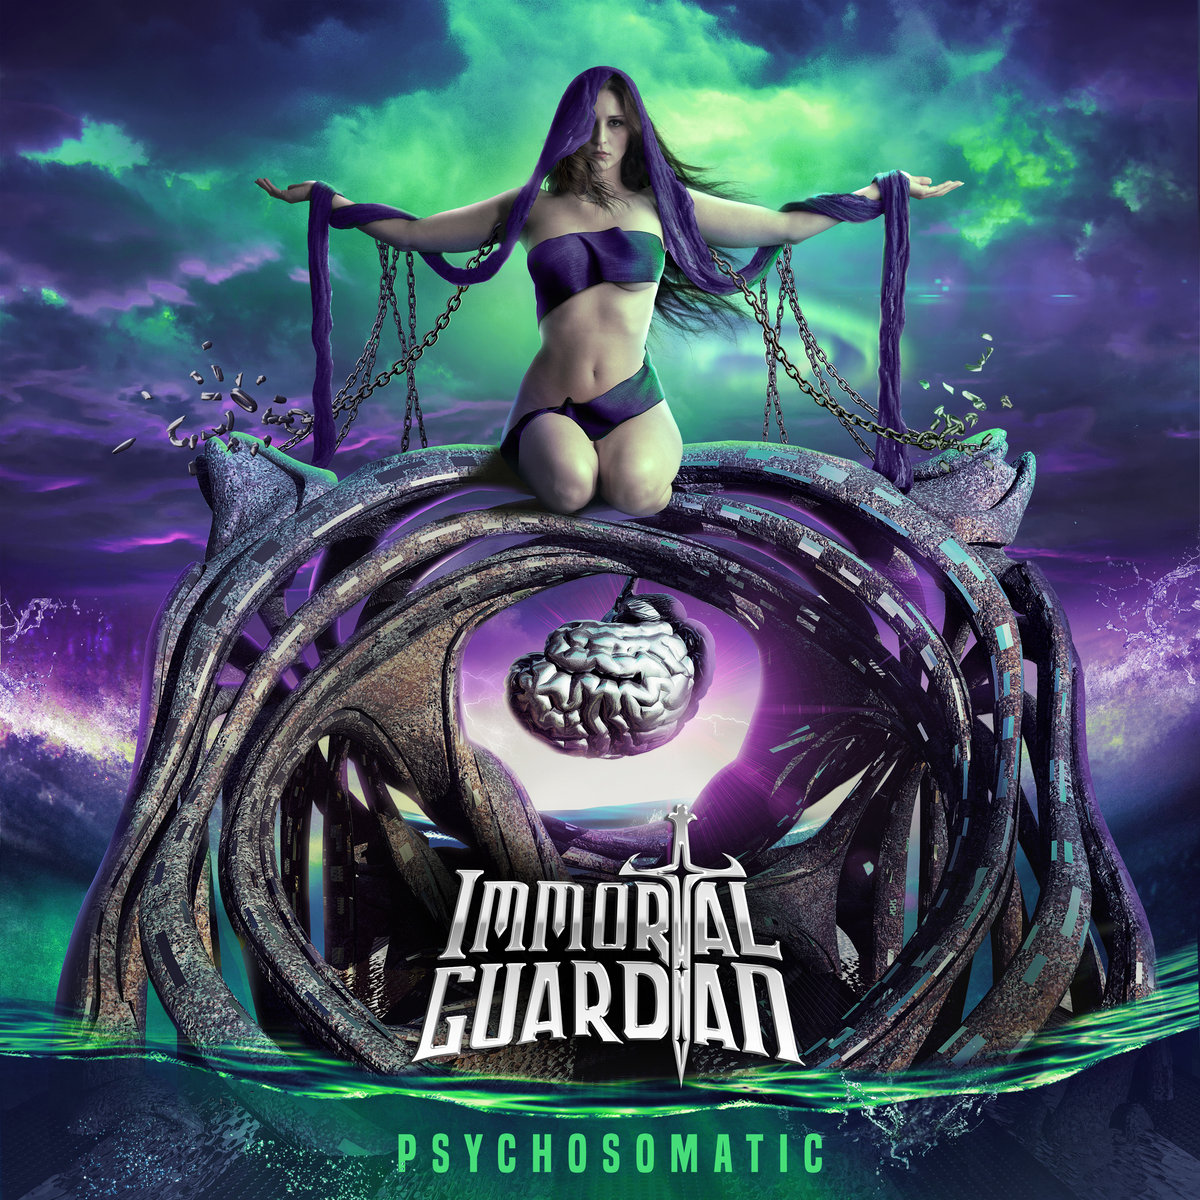 Psychosomatic Immortal Guardian Album Cover Artwork